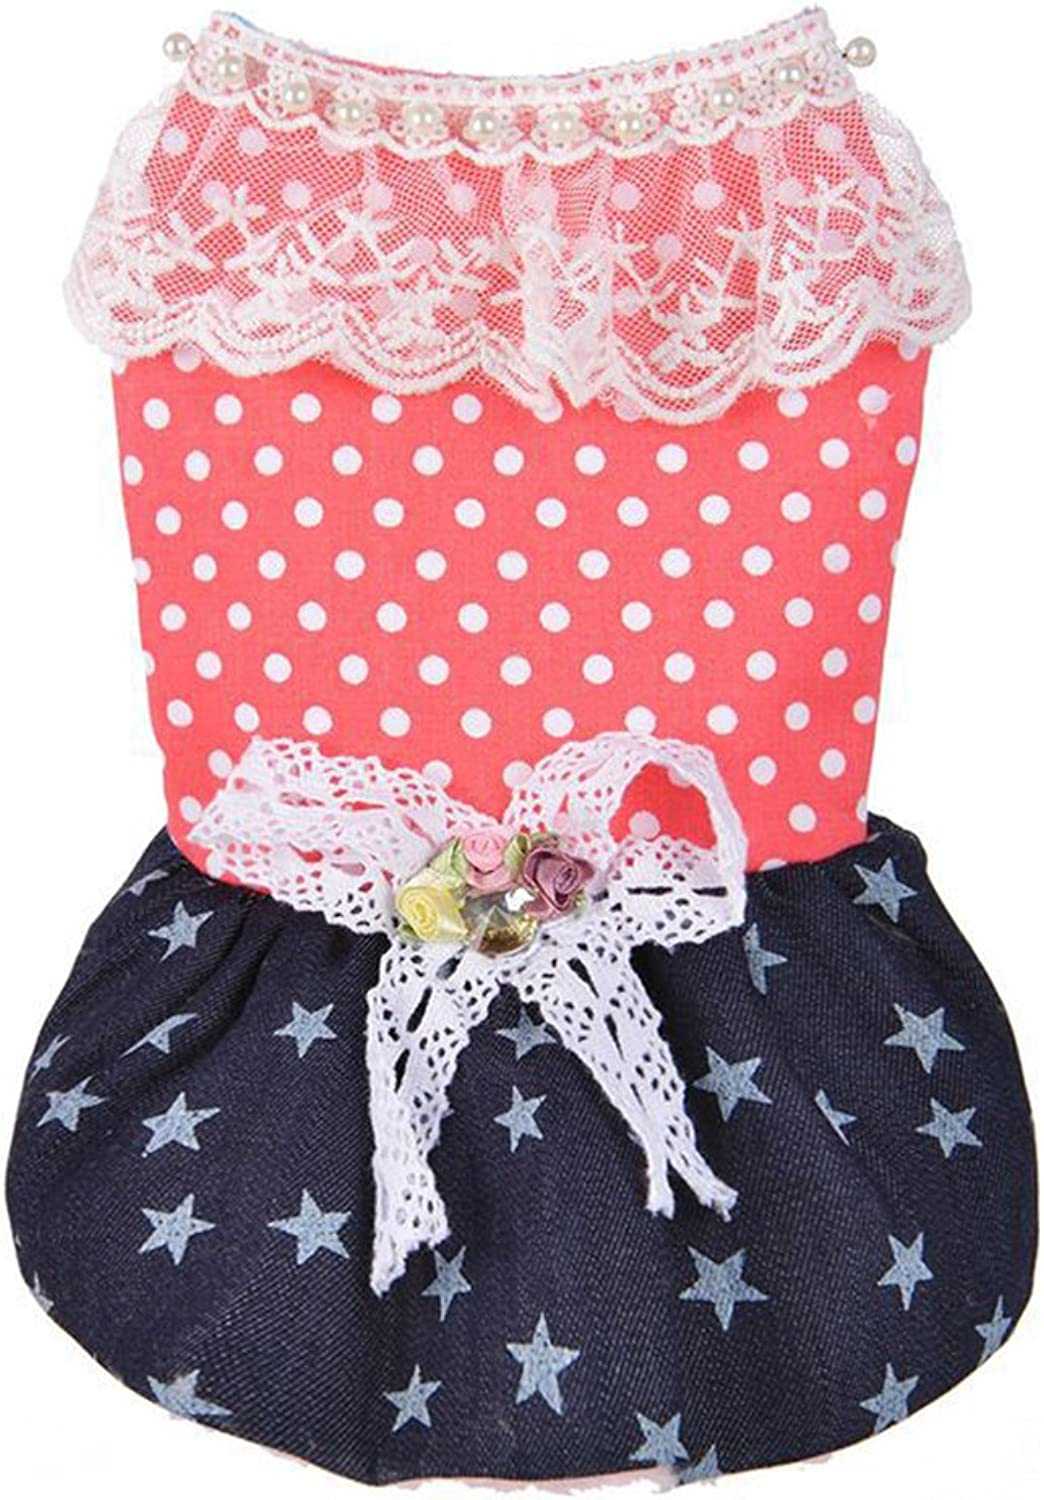 Pets Puppy Warm Outfits Polka Dot Star Print Denim Dog Dress Cute Clothes for Dogs